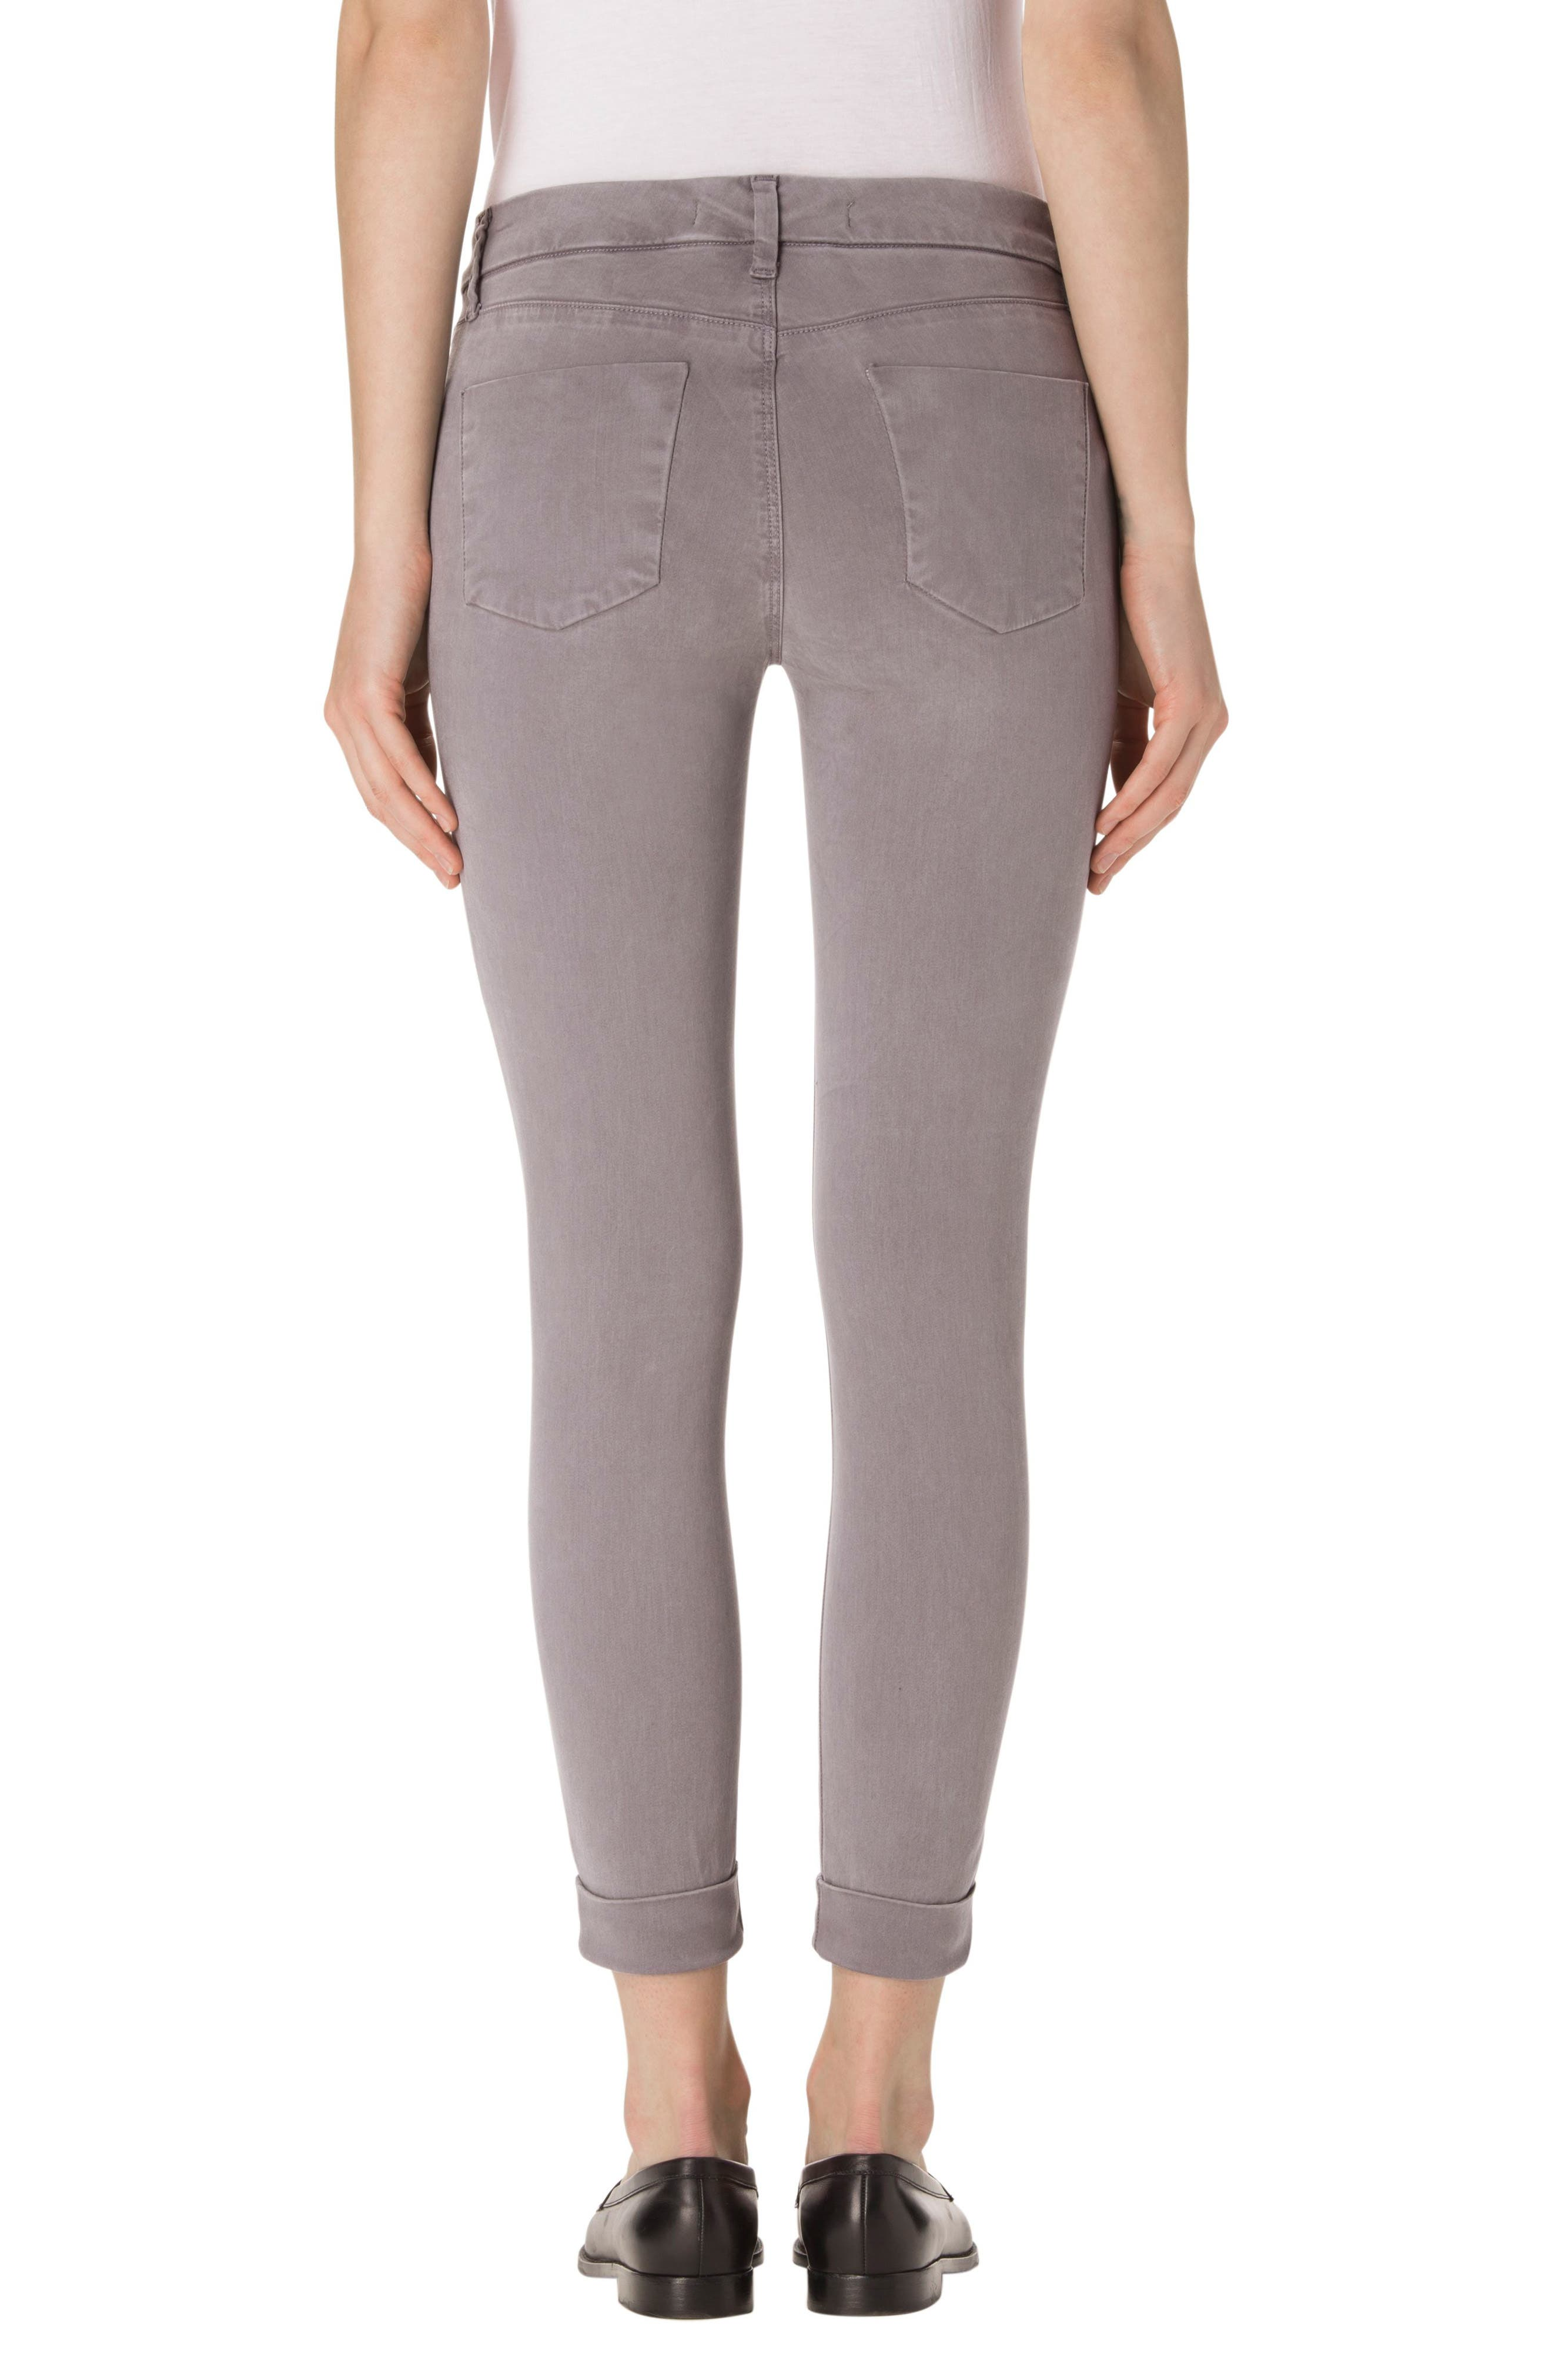 'Anja' Cuffed Crop Skinny Jeans,                             Alternate thumbnail 8, color,